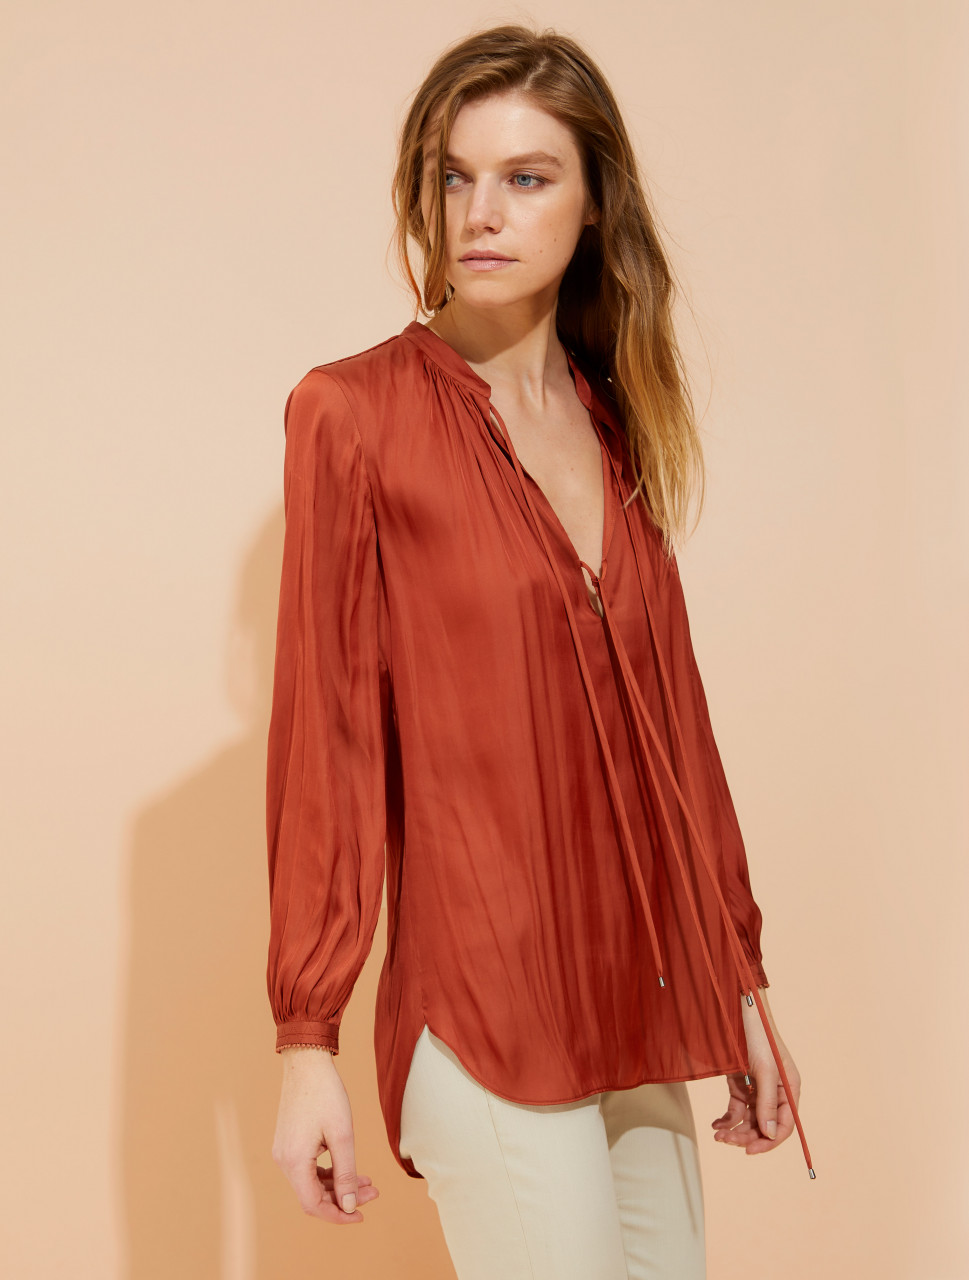 BLOUSON SLEEVE MEMORY SATIN TOP